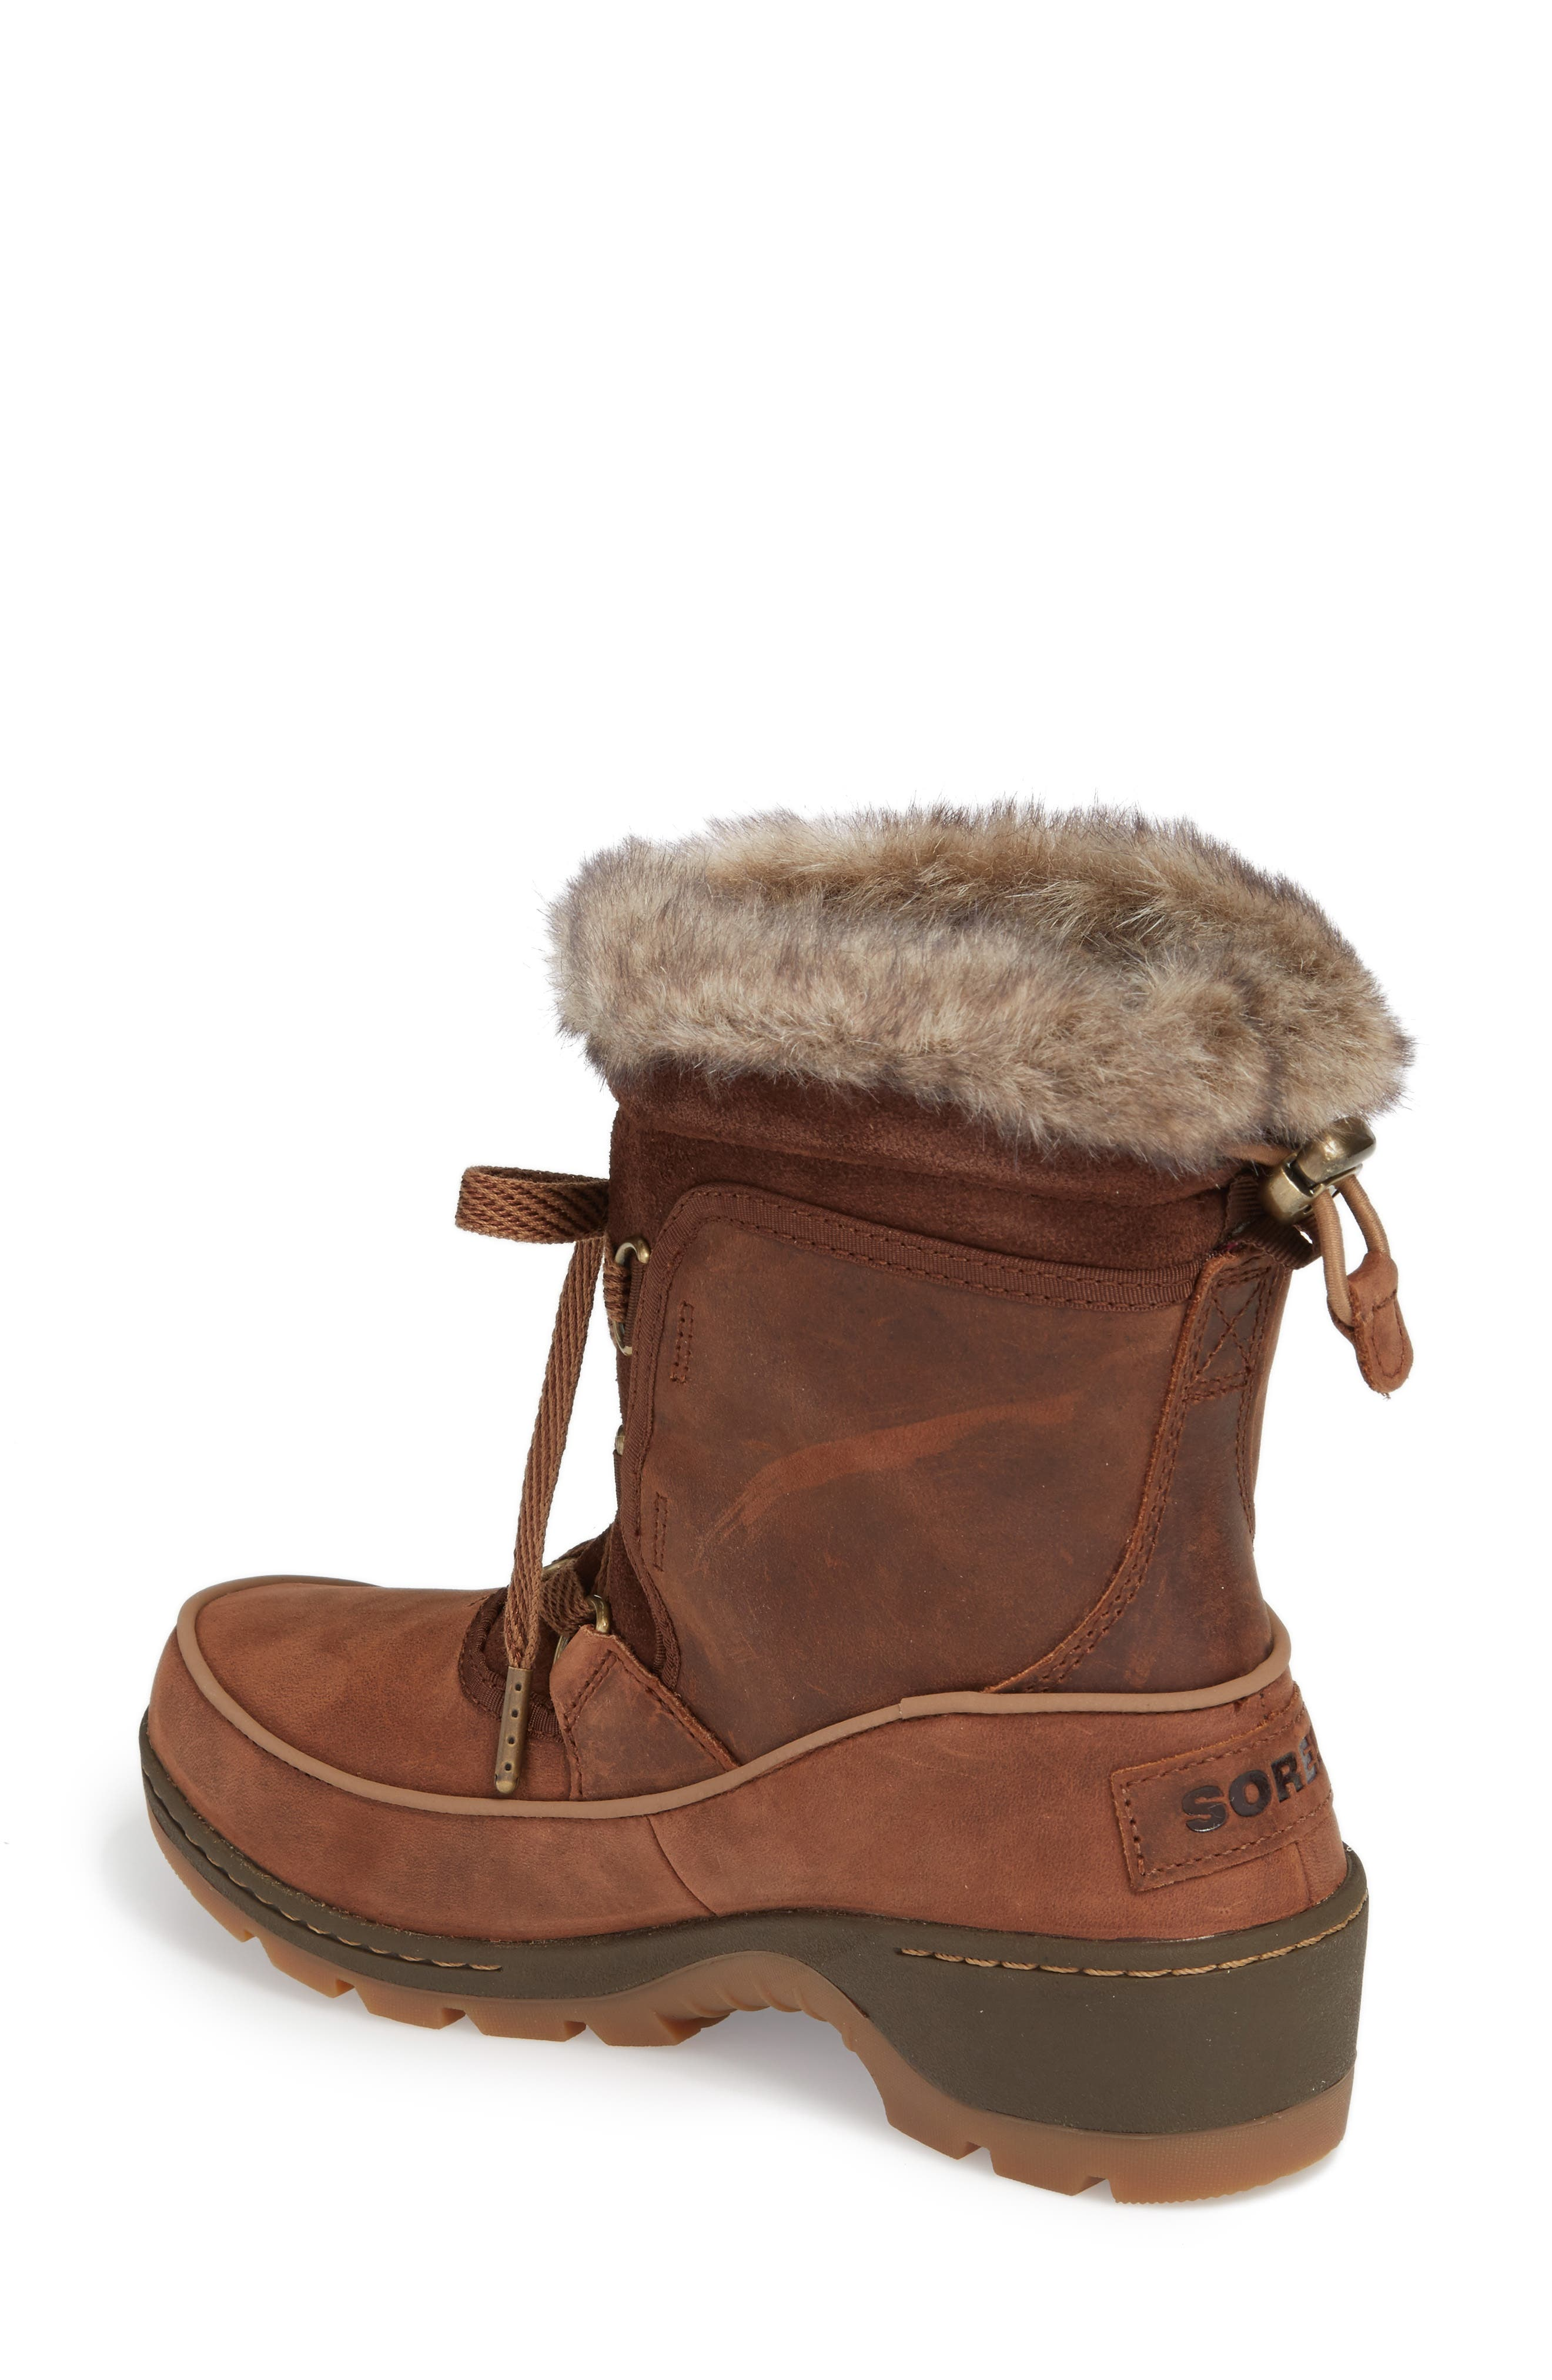 Tivoli II Insulated Winter Boot with Faux Fur Trim,                             Alternate thumbnail 4, color,